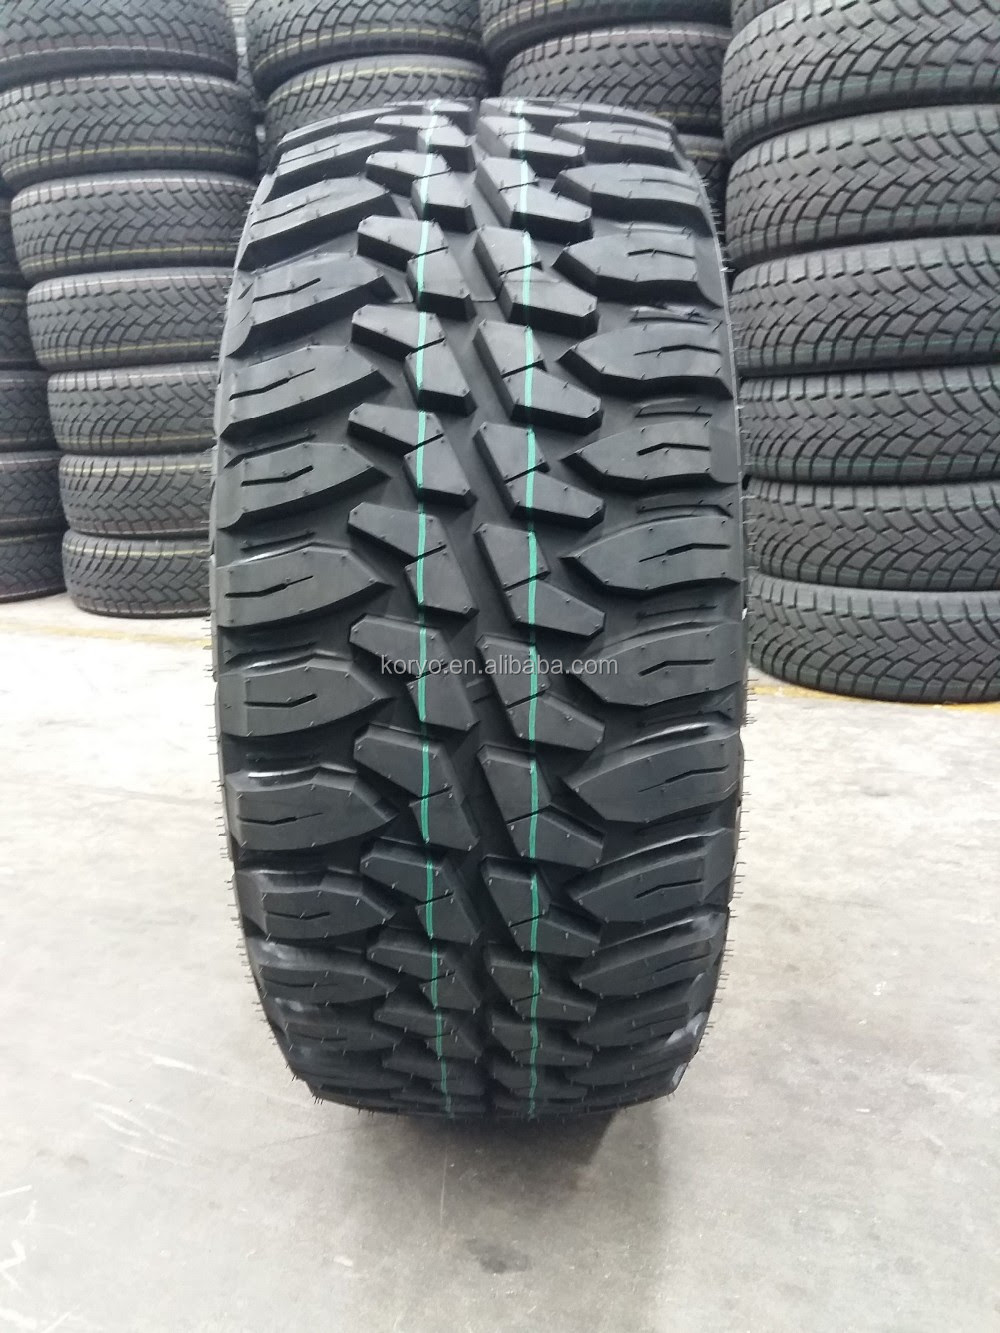 Haida Mt Mud Terrain Car Tires 35xpr View Tires Koryo Toryo Haida Passage Tianfu